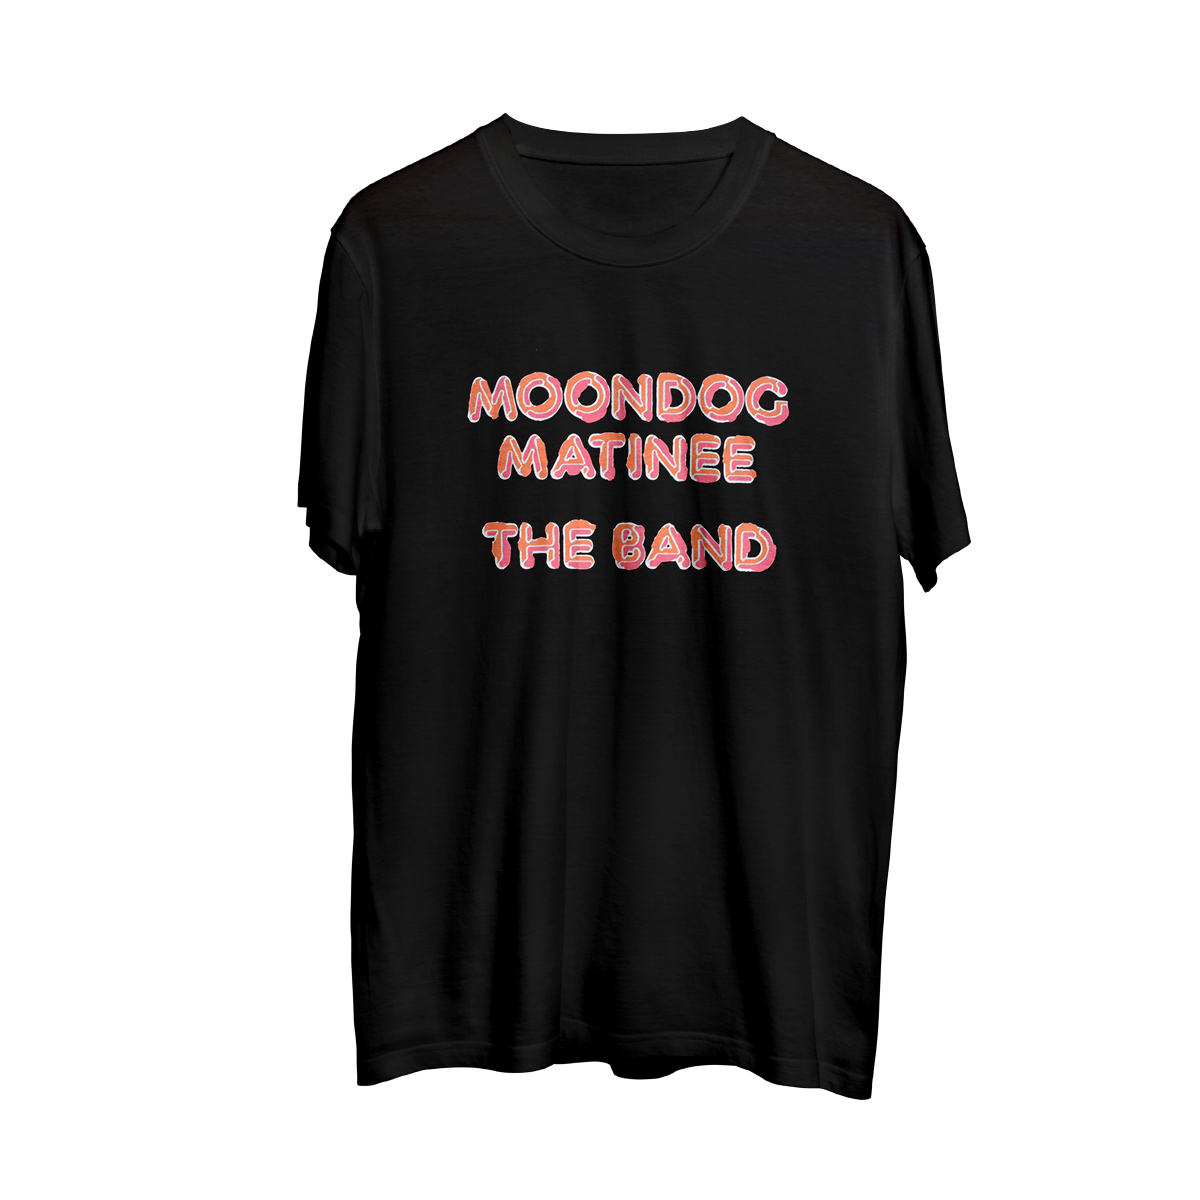 The Band Moondog Matinee Black T-shirt